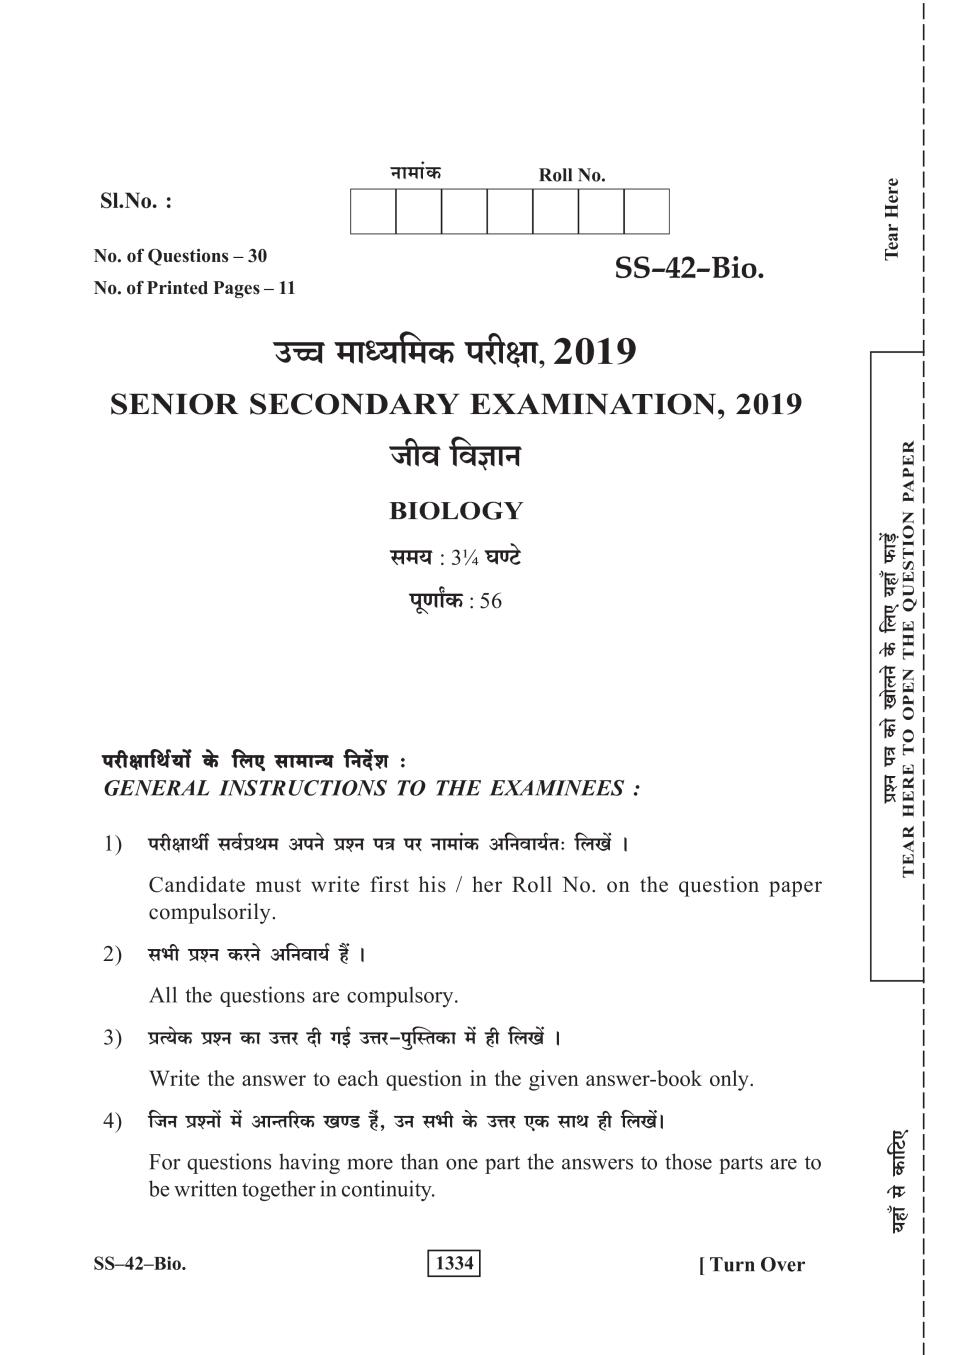 Rajasthan Board Sr. Secondary Biology Question Paper